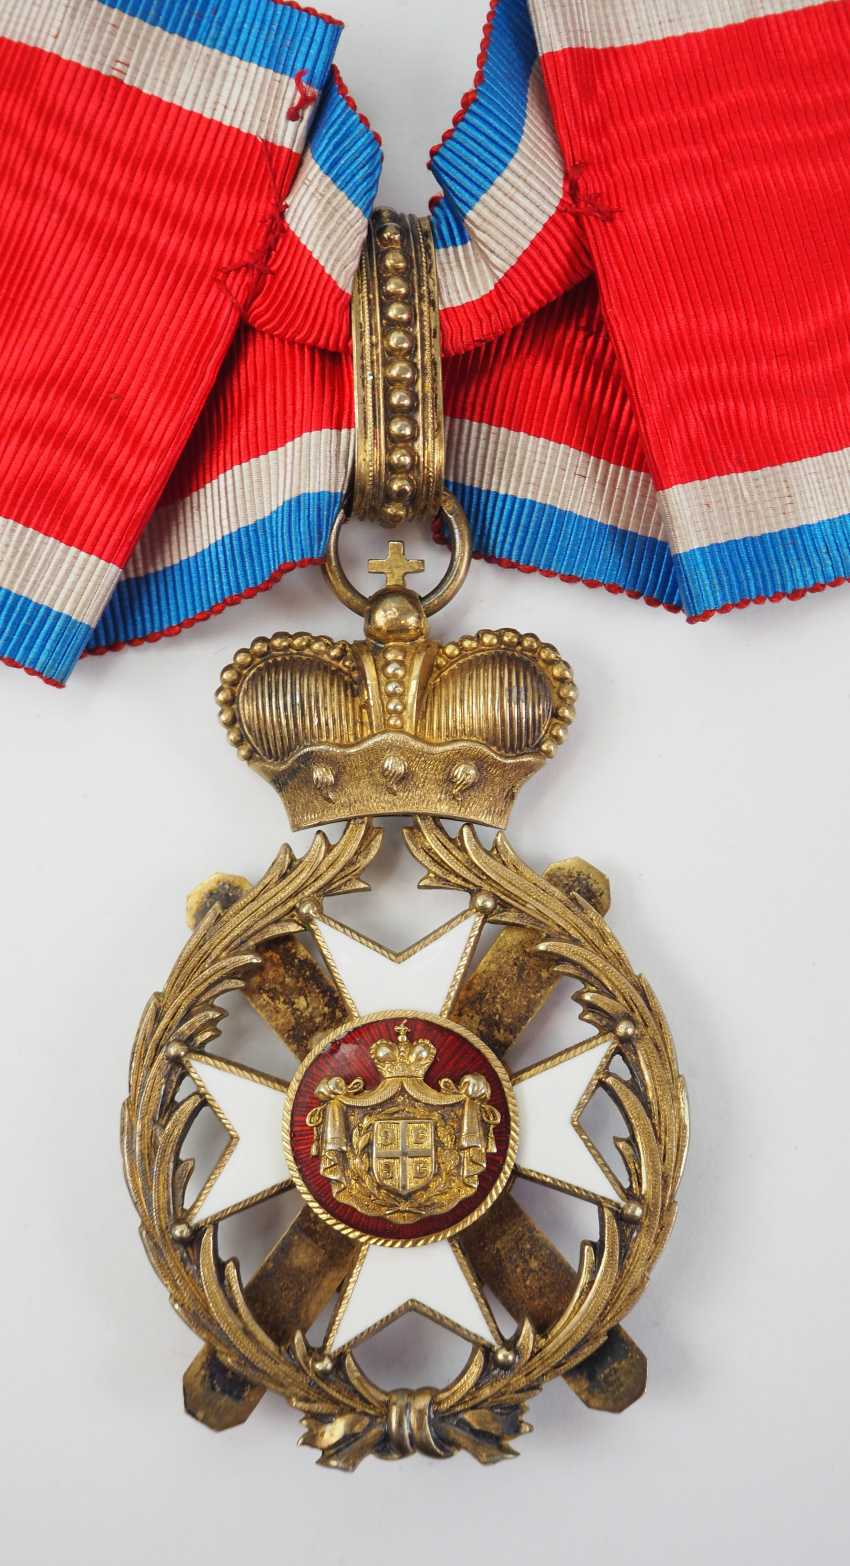 Serbia: order of the cross of Takowo, 4. Model (1878-1903), Comtur Cross. - photo 3